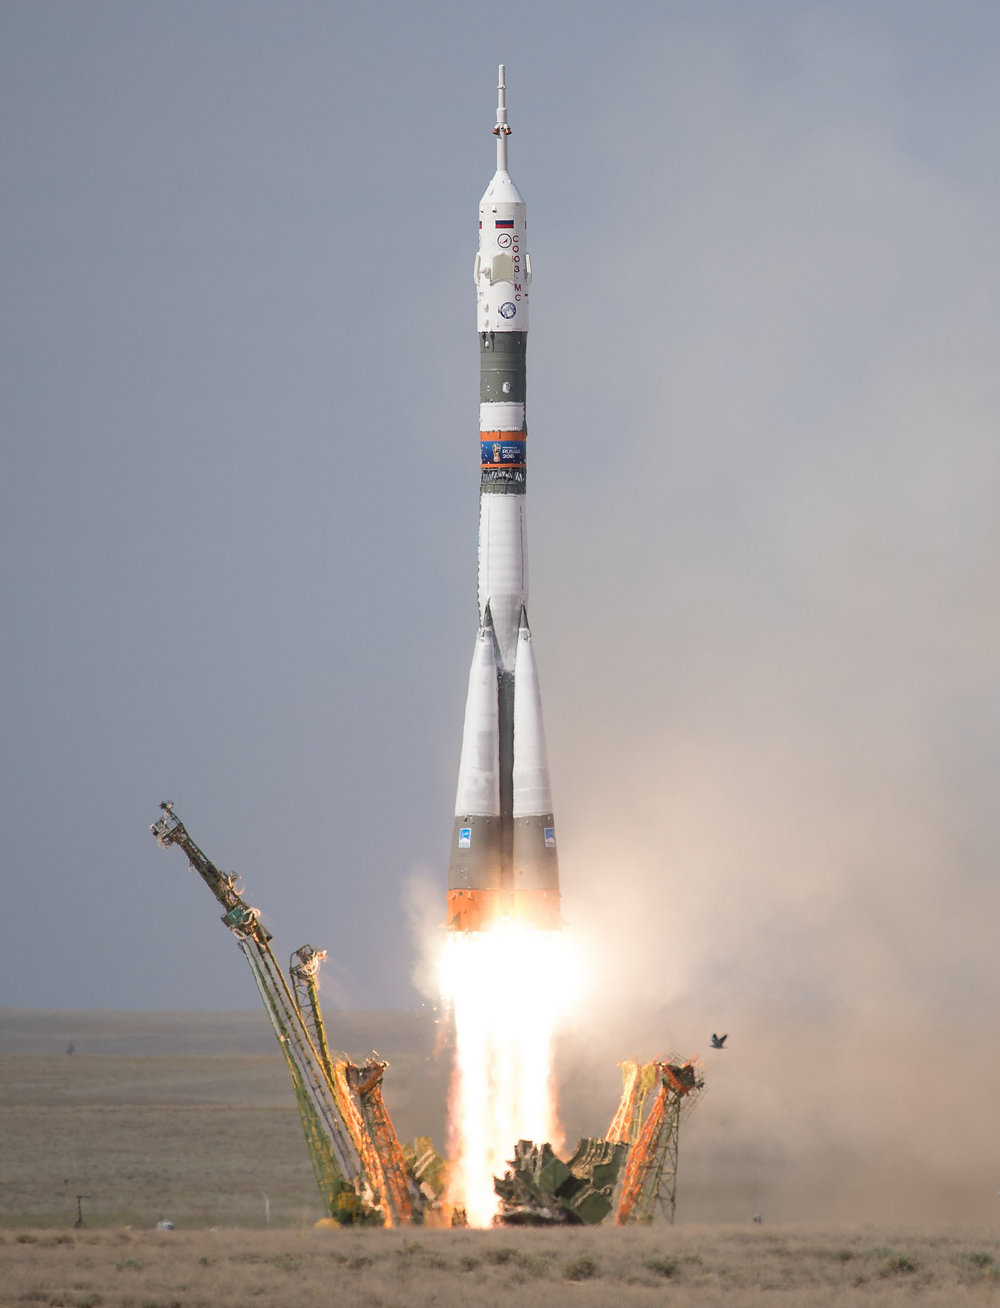 Soyuz MS-09 launches toward space. Photo Credit: Joel Kowsky / NASA